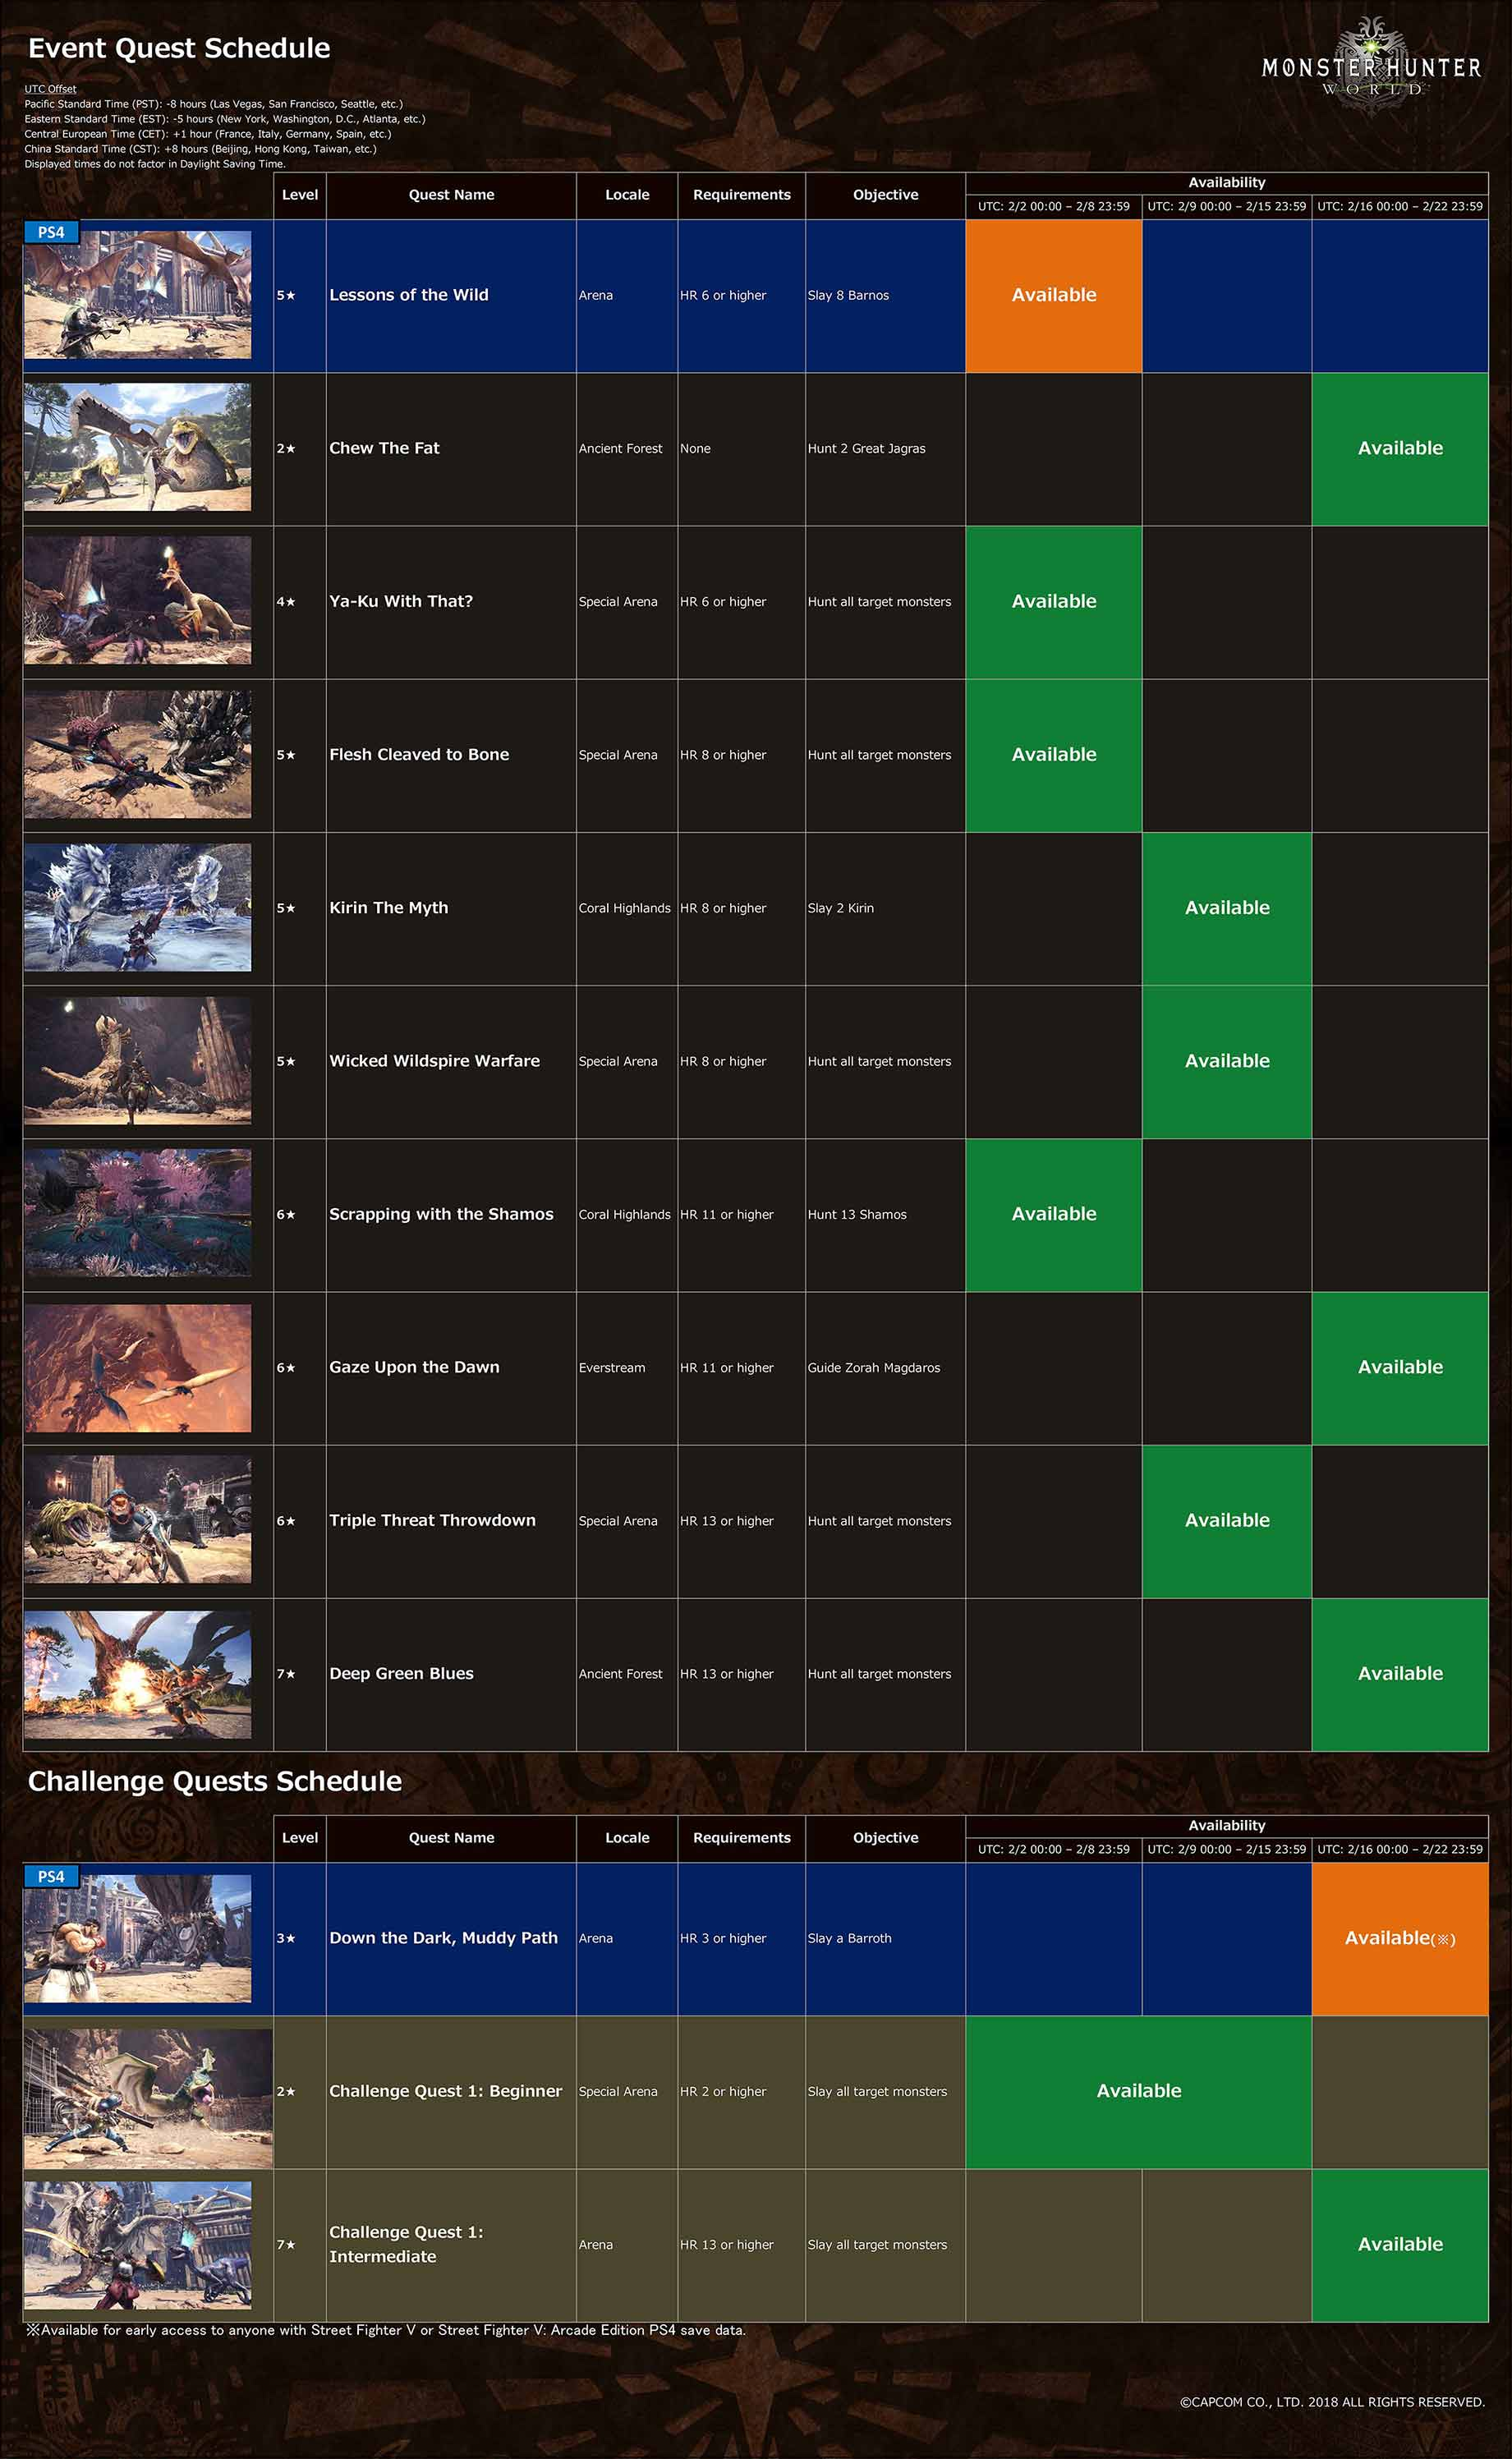 Calendario de eventos Monster Hunter World